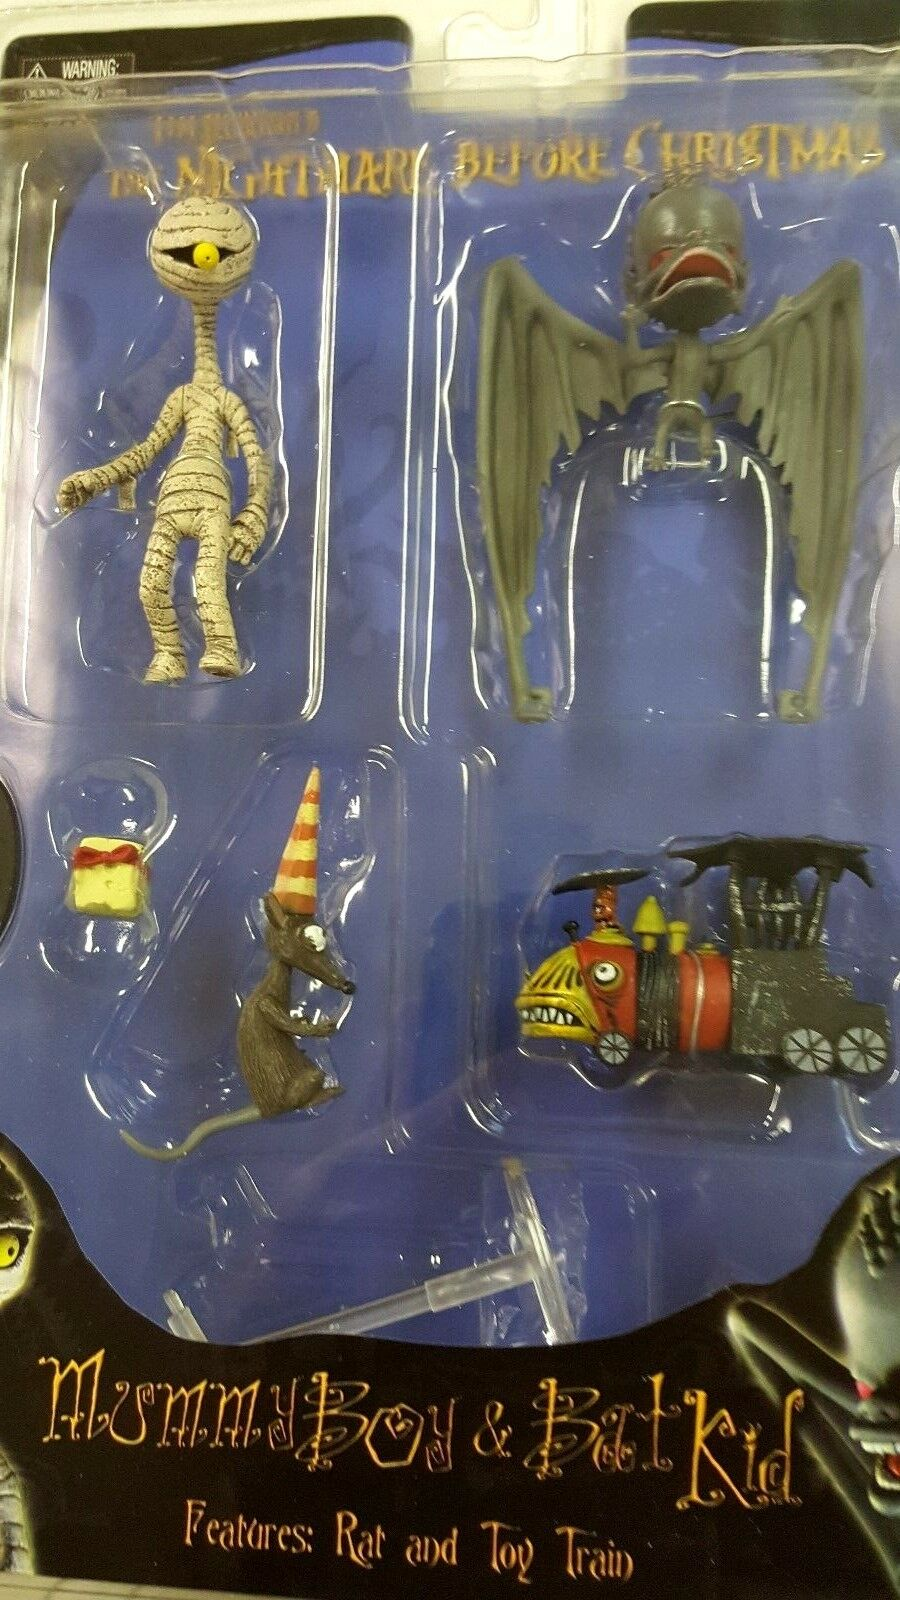 Nightmare Before Christmas - Tim Burton's MUMMY BOY & BAT KID series 4